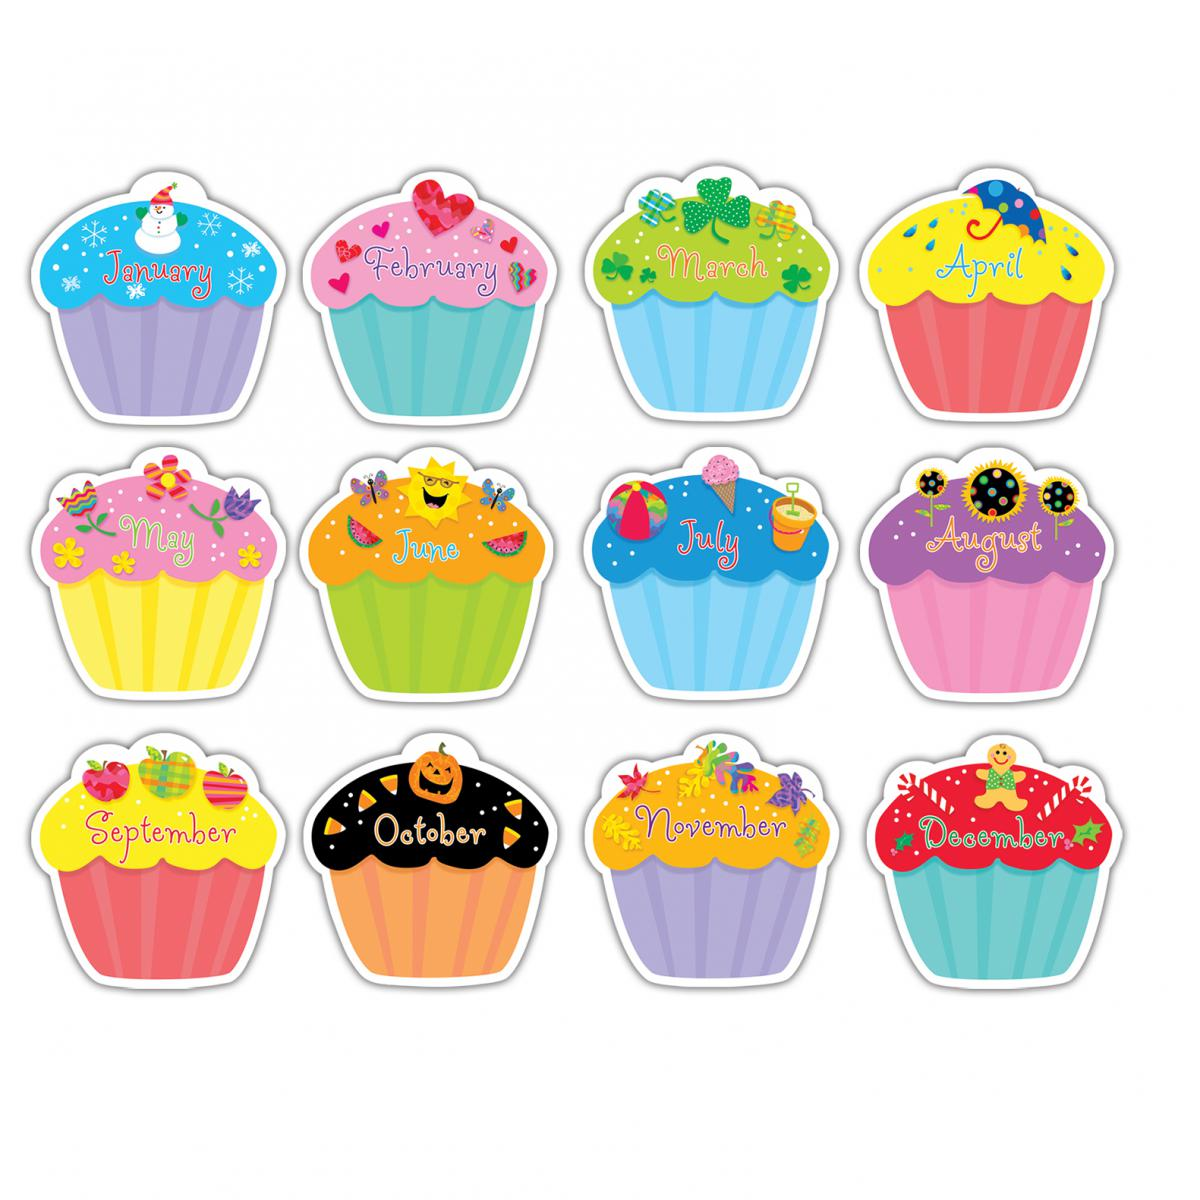 Cupcakes Cut-Outs